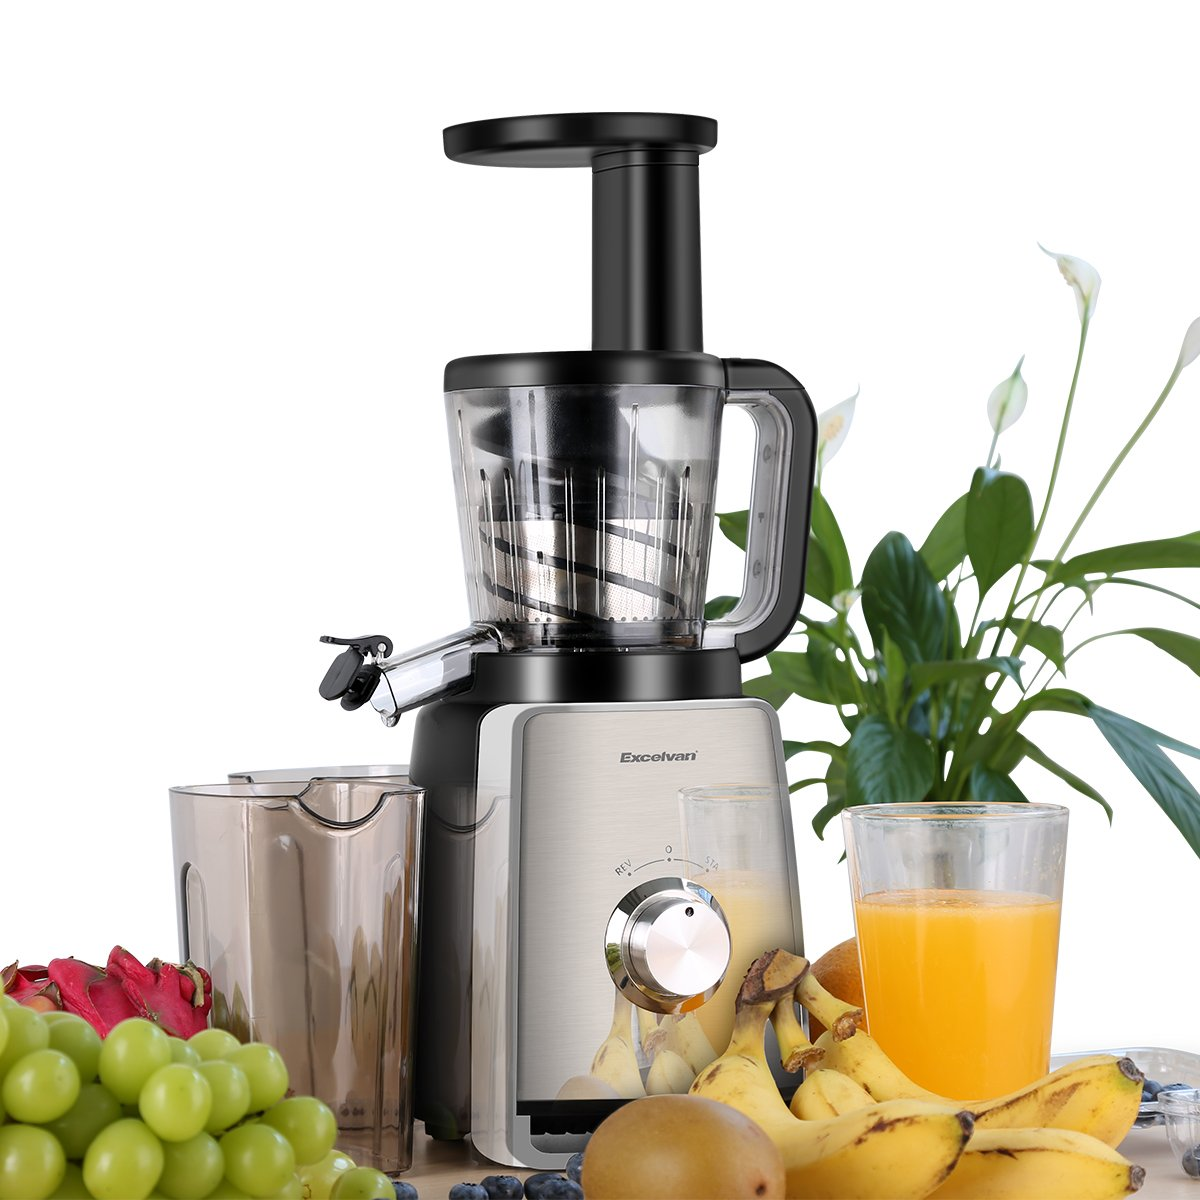 Excelvan 1000W Professional Slow Juicer for Max Nutrient Fruit Vegetable Juice Extractor with Dual Spouts and Two Containers FUDISI Tech